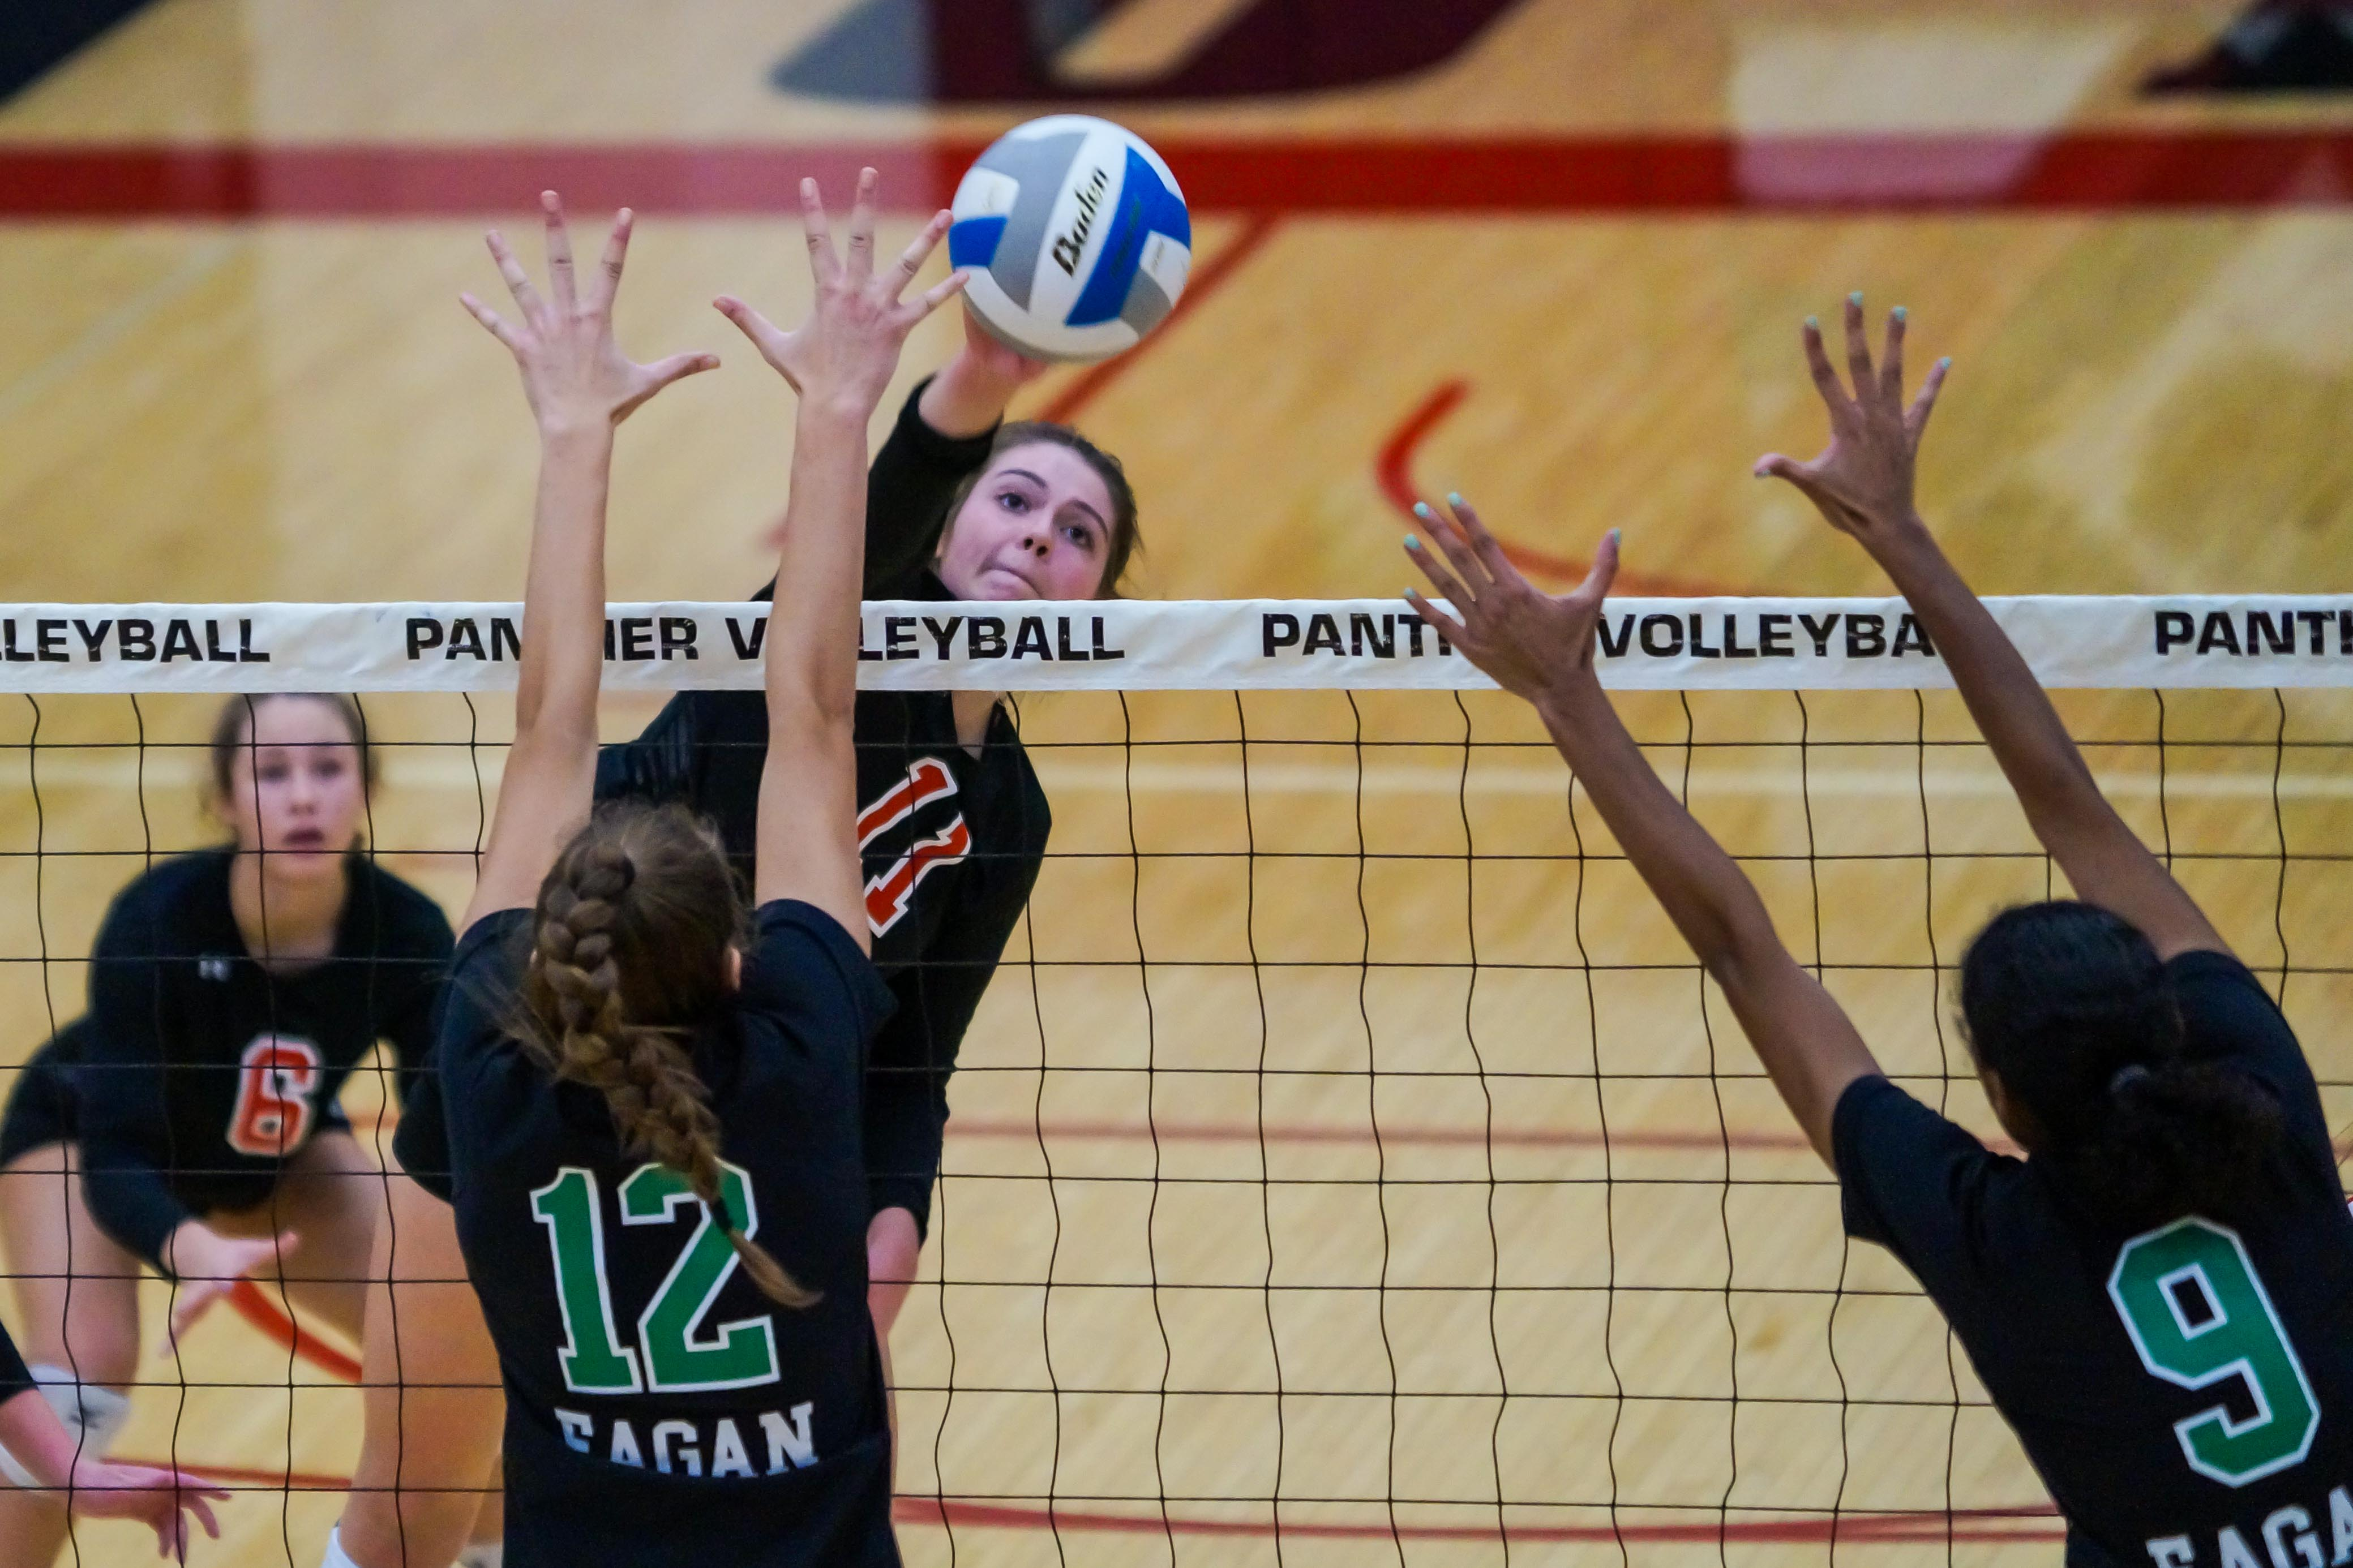 Lakeville senior Abbey Milner (11) with a spike attempt Thursday against Eagan. Milner had 15 kills, helping the Panthers to victory in their season finale. Photo by Korey McDermott, SportsEngine